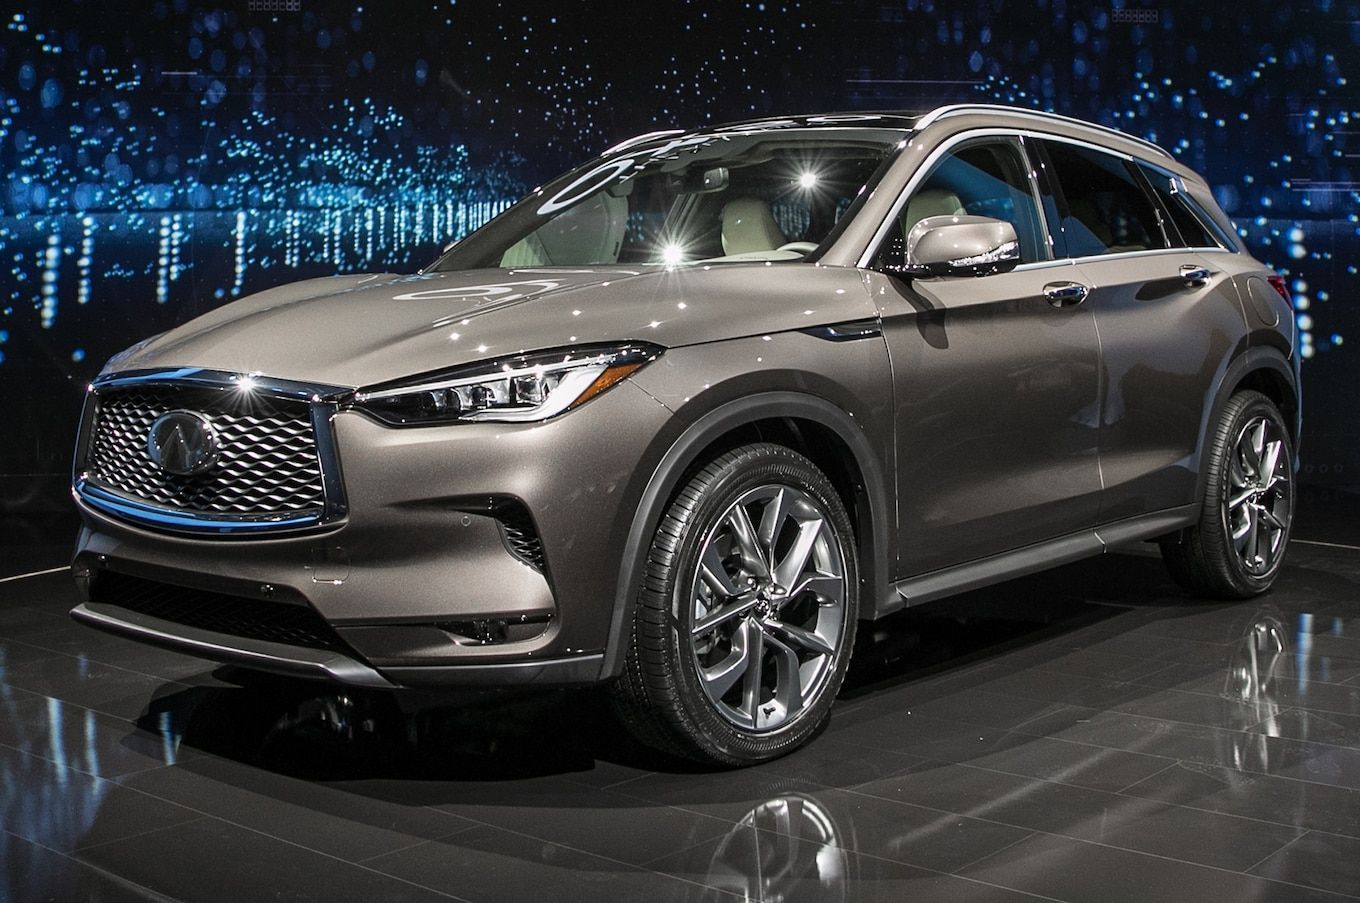 2020 Infiniti QX30 Becomes Electric Crossover SUV >> Pin On Cars Review